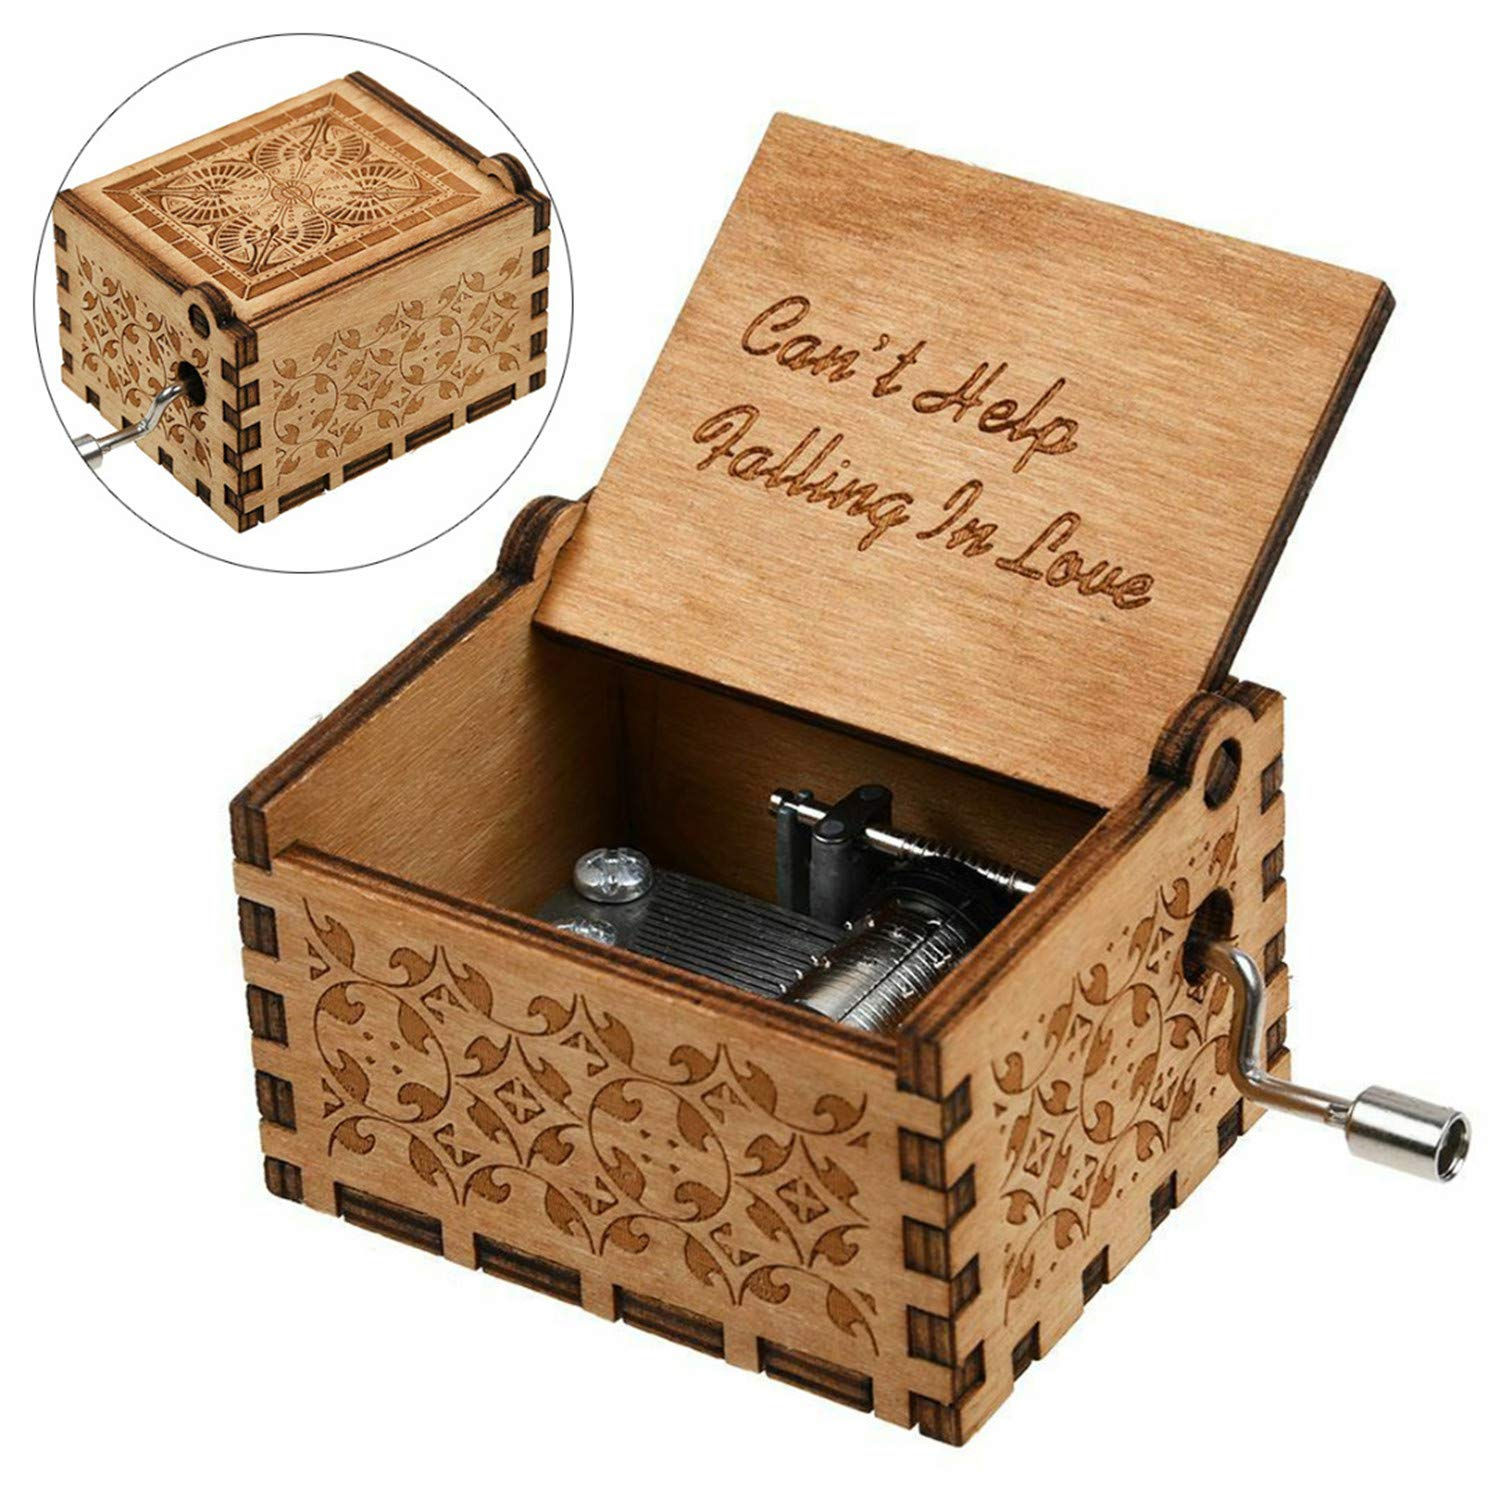 Huntmic Cant Help Falling in Love Wood Music Box Antique Engraved Musical Boxes Case for Birthday Present Kid Toys Hand-Operated